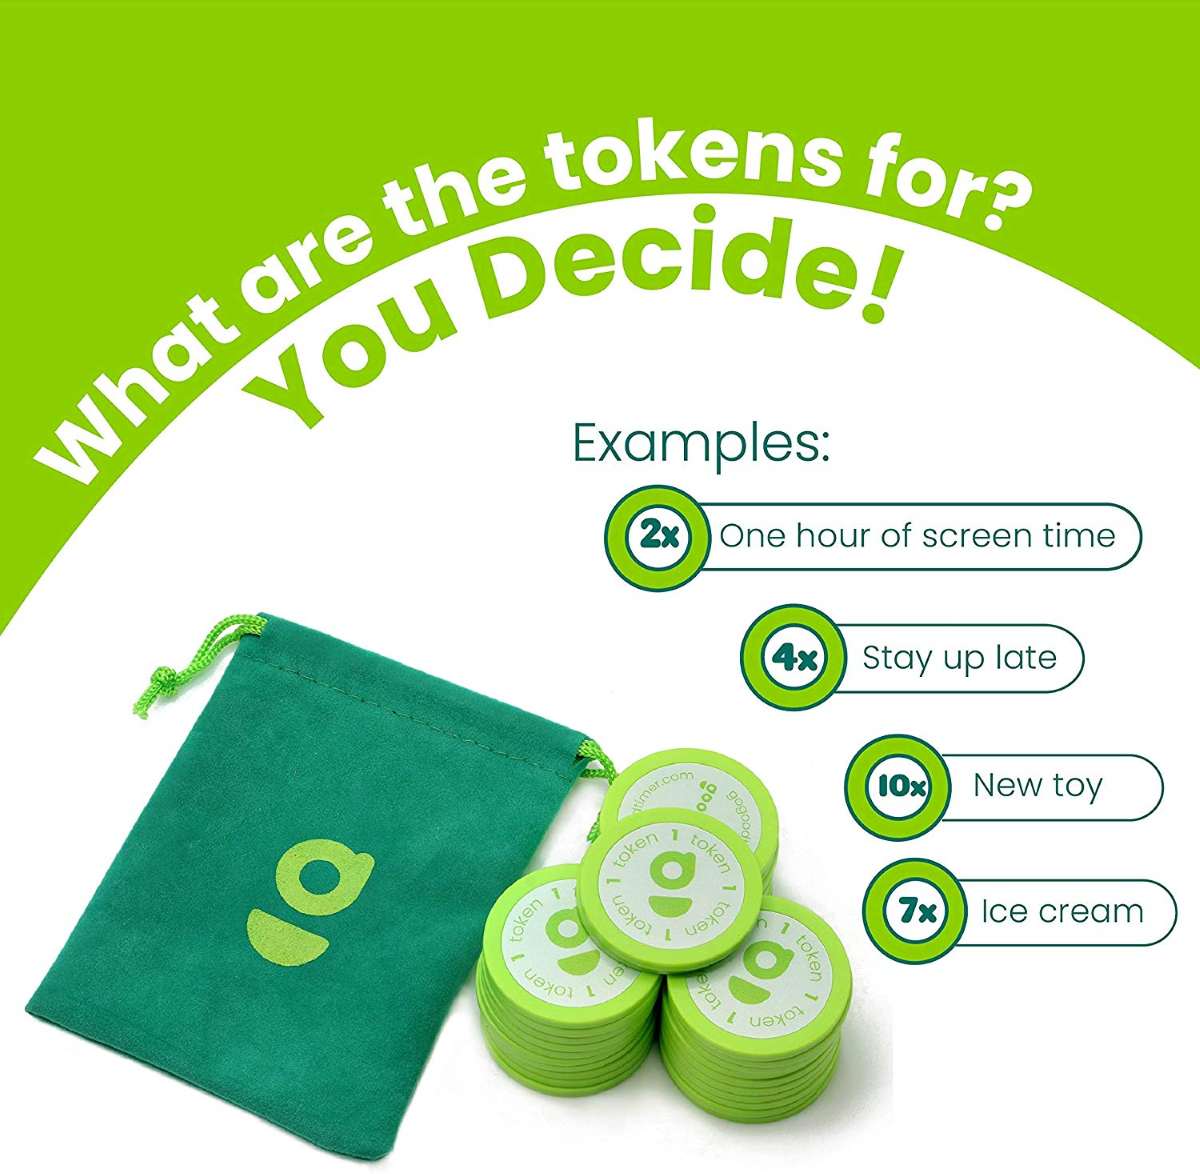 Reusable Tokens that are used to engage in family activities to reward good behavior